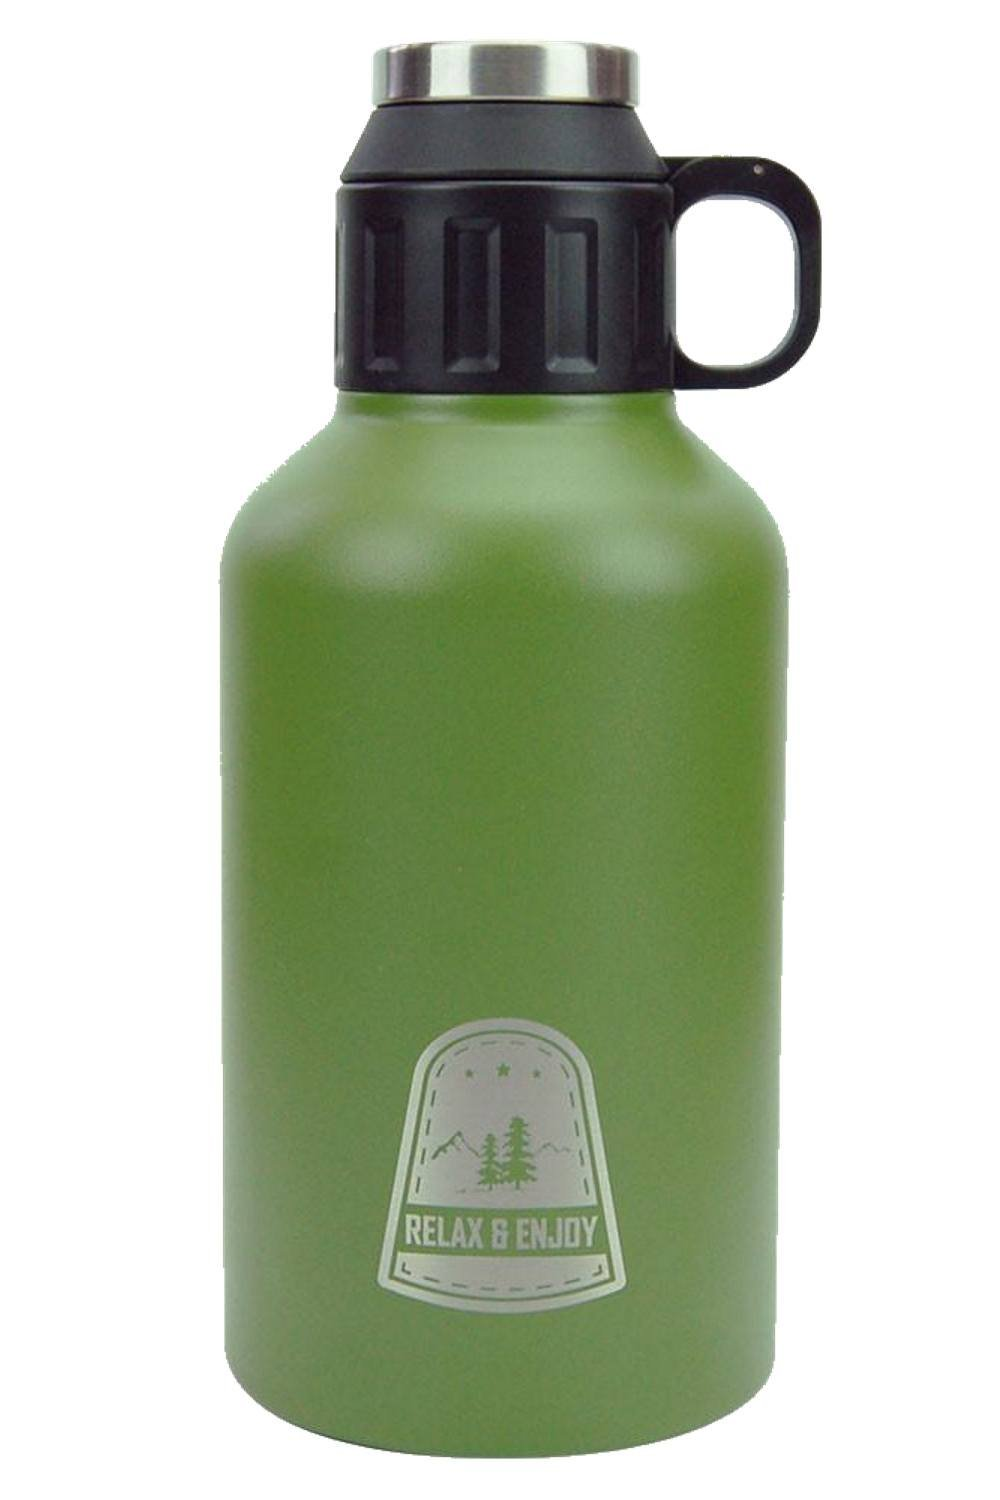 reduce COLD-1 Stainless Steel Insulated Growler, Outdoor Series''Relax and Enjoy'', 64oz (Green)